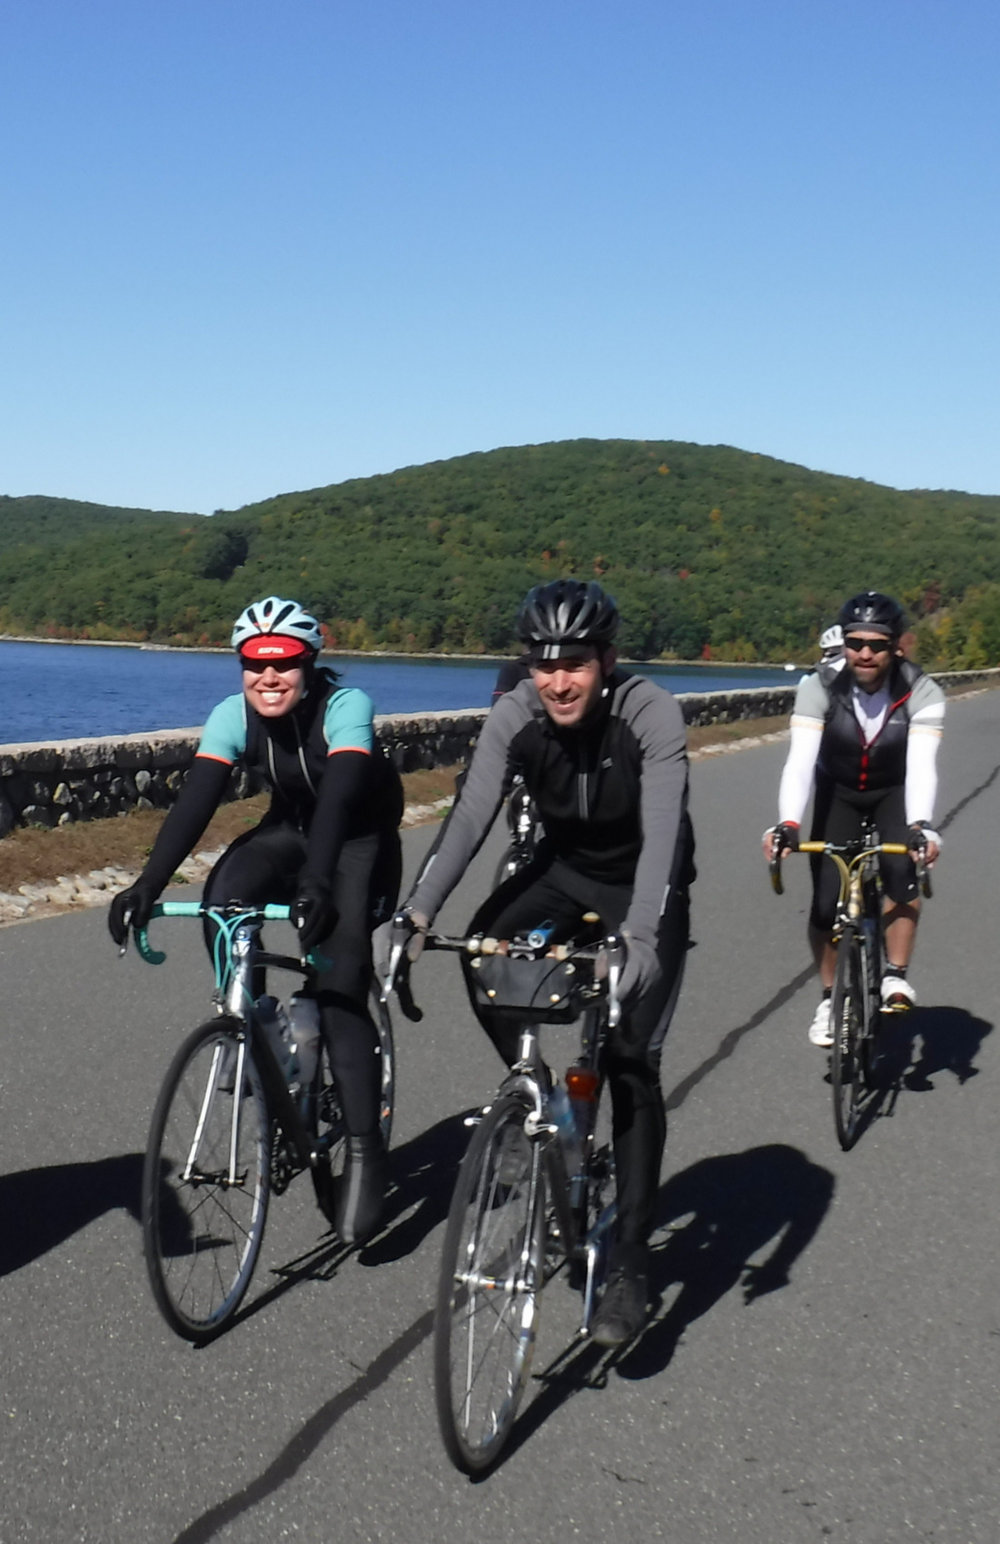 The Formidable Ride is the toughest road ride in Massachusetts.  The Formidable Terra is the toughest mixed-terrain ride.  Join us and find out why! Saturday, 14 October 2017 The Formidable Road and mixed-terrain routes that climb Mount Greylock and more! Learn the Details →